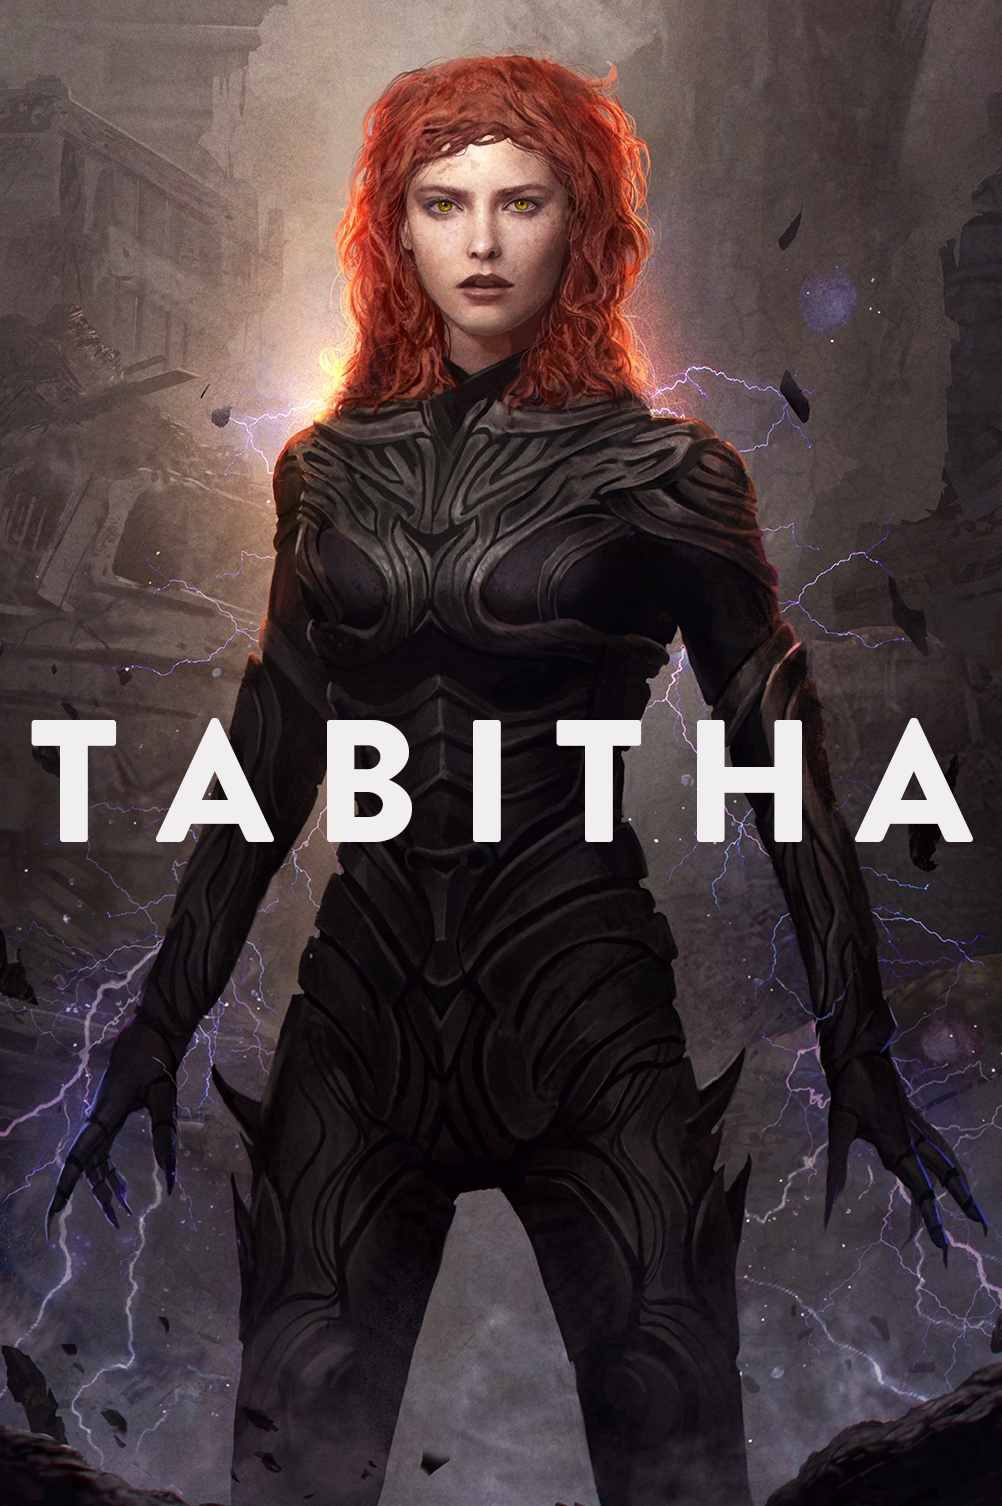 Tabitha – Promising blurb but unfortunately I found it rather meh.